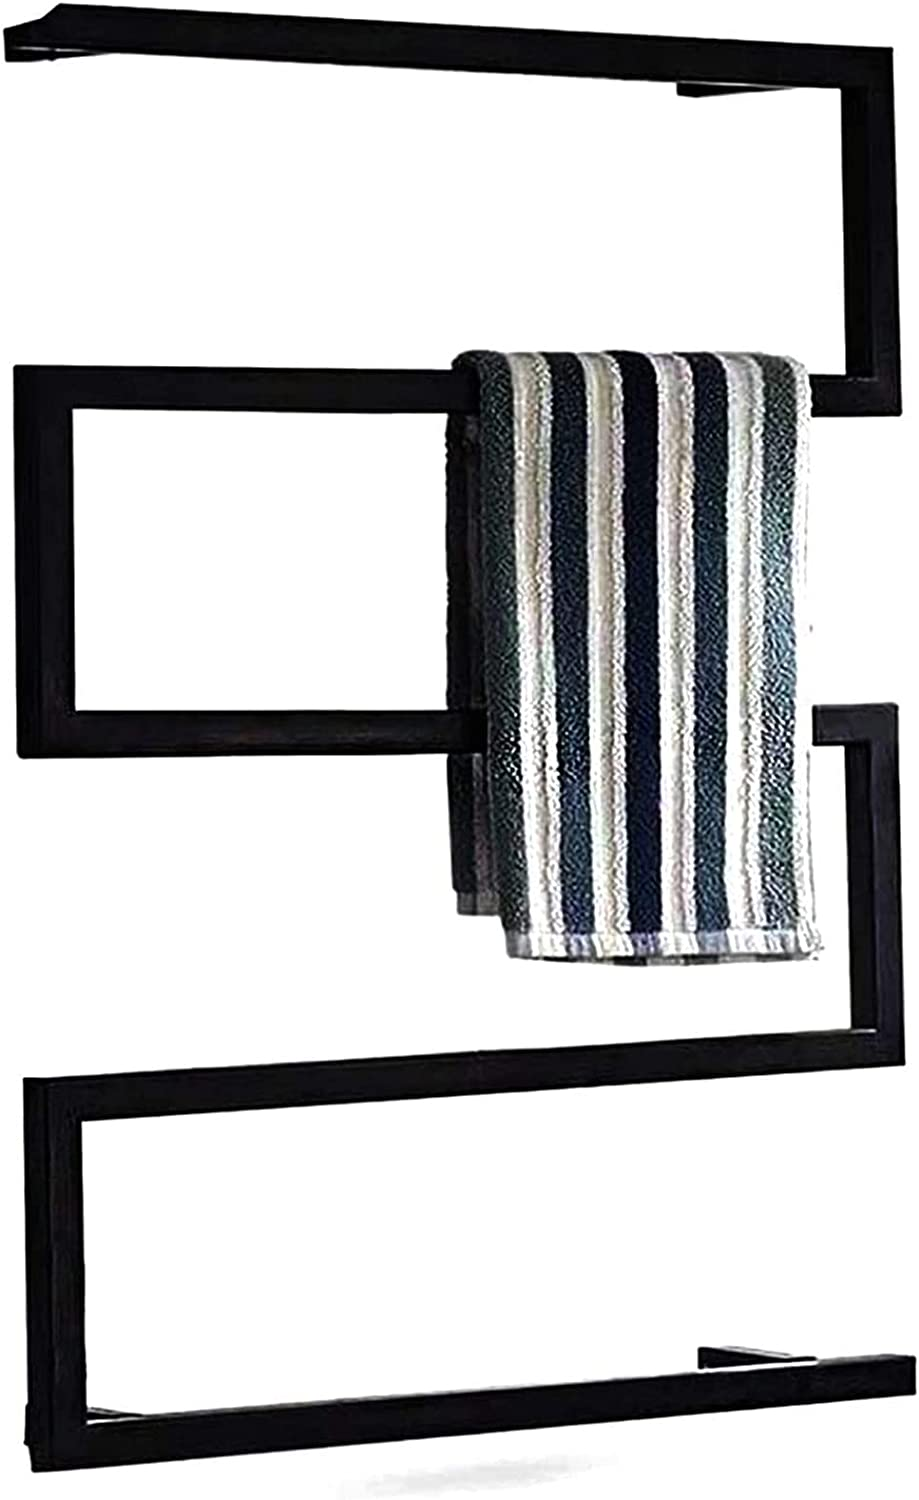 Electric Heated Towel Drying Mounted Wall Rack Modern Max 90% OFF Max 70% OFF